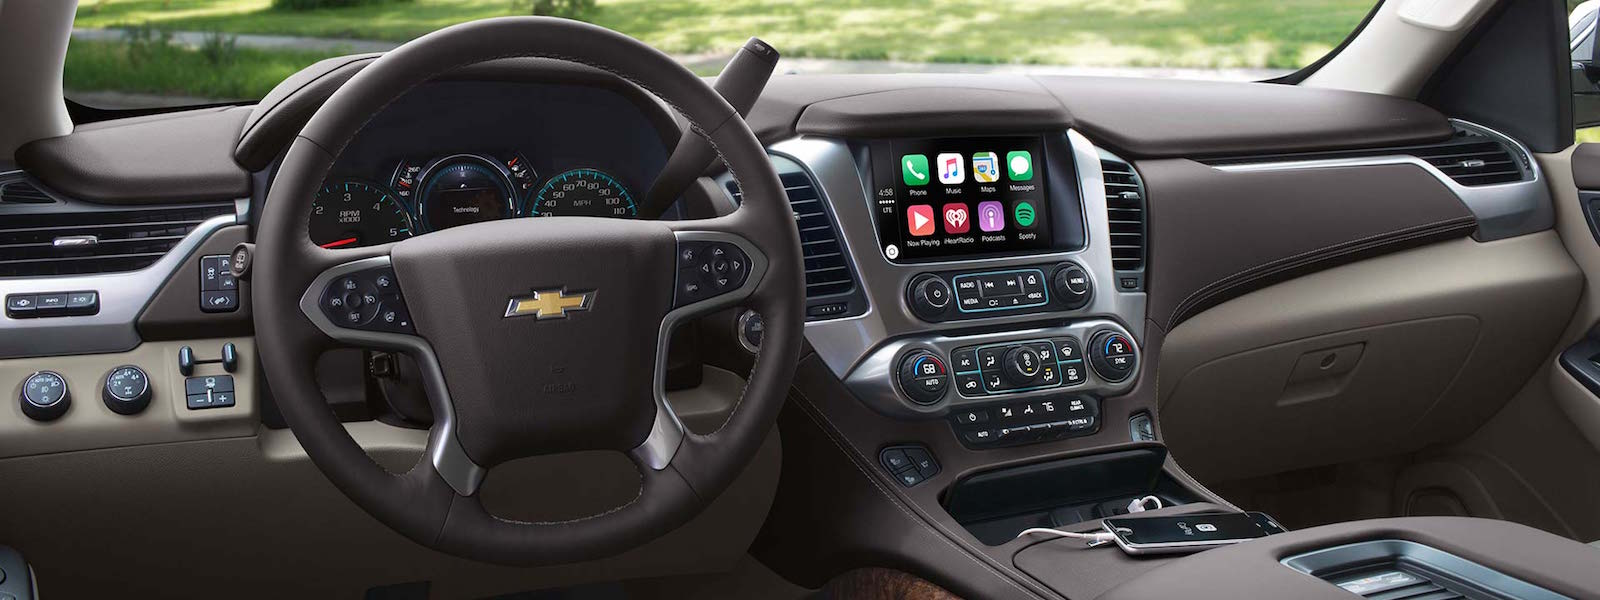 2016 Chevy Tahoe interior